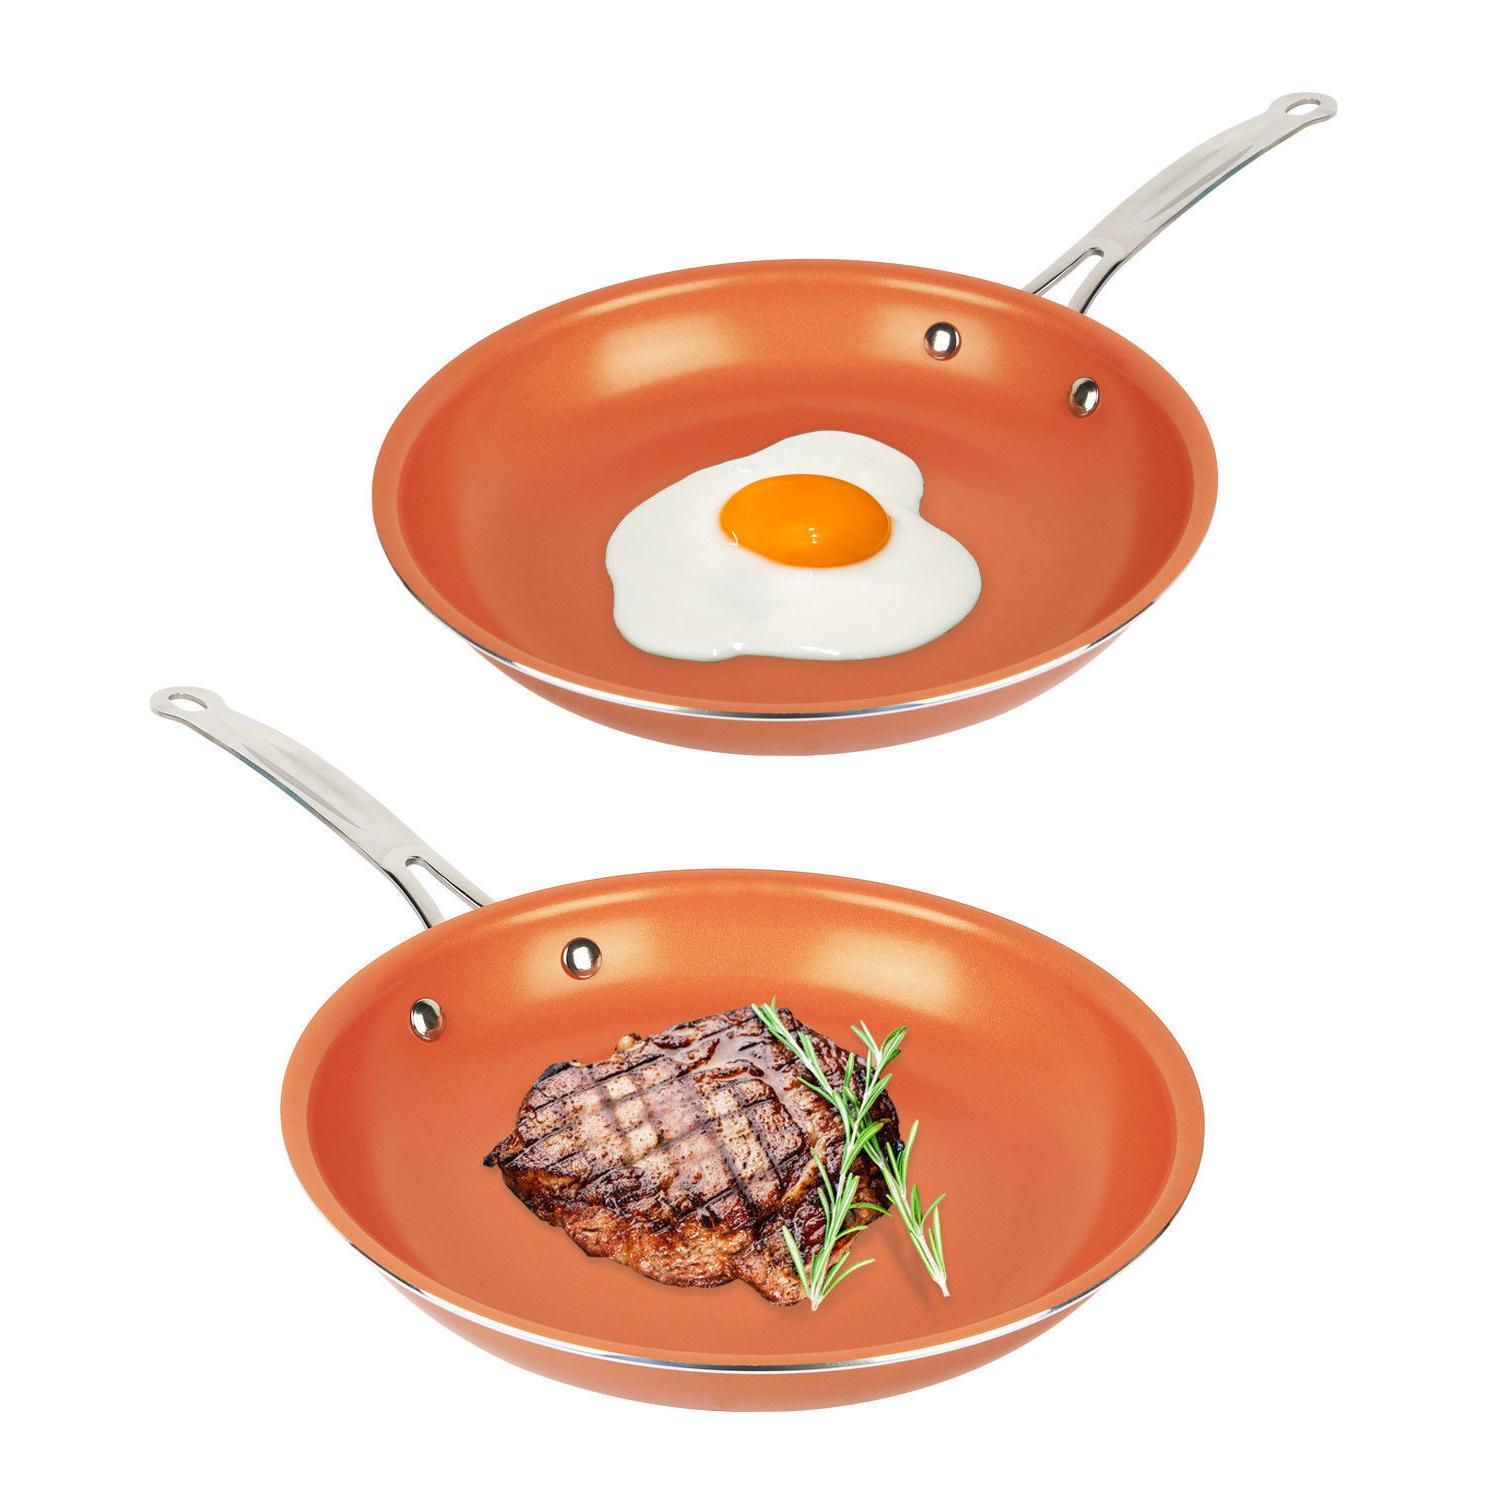 Healthy Non Stick Ceramic Induction Frying Pan